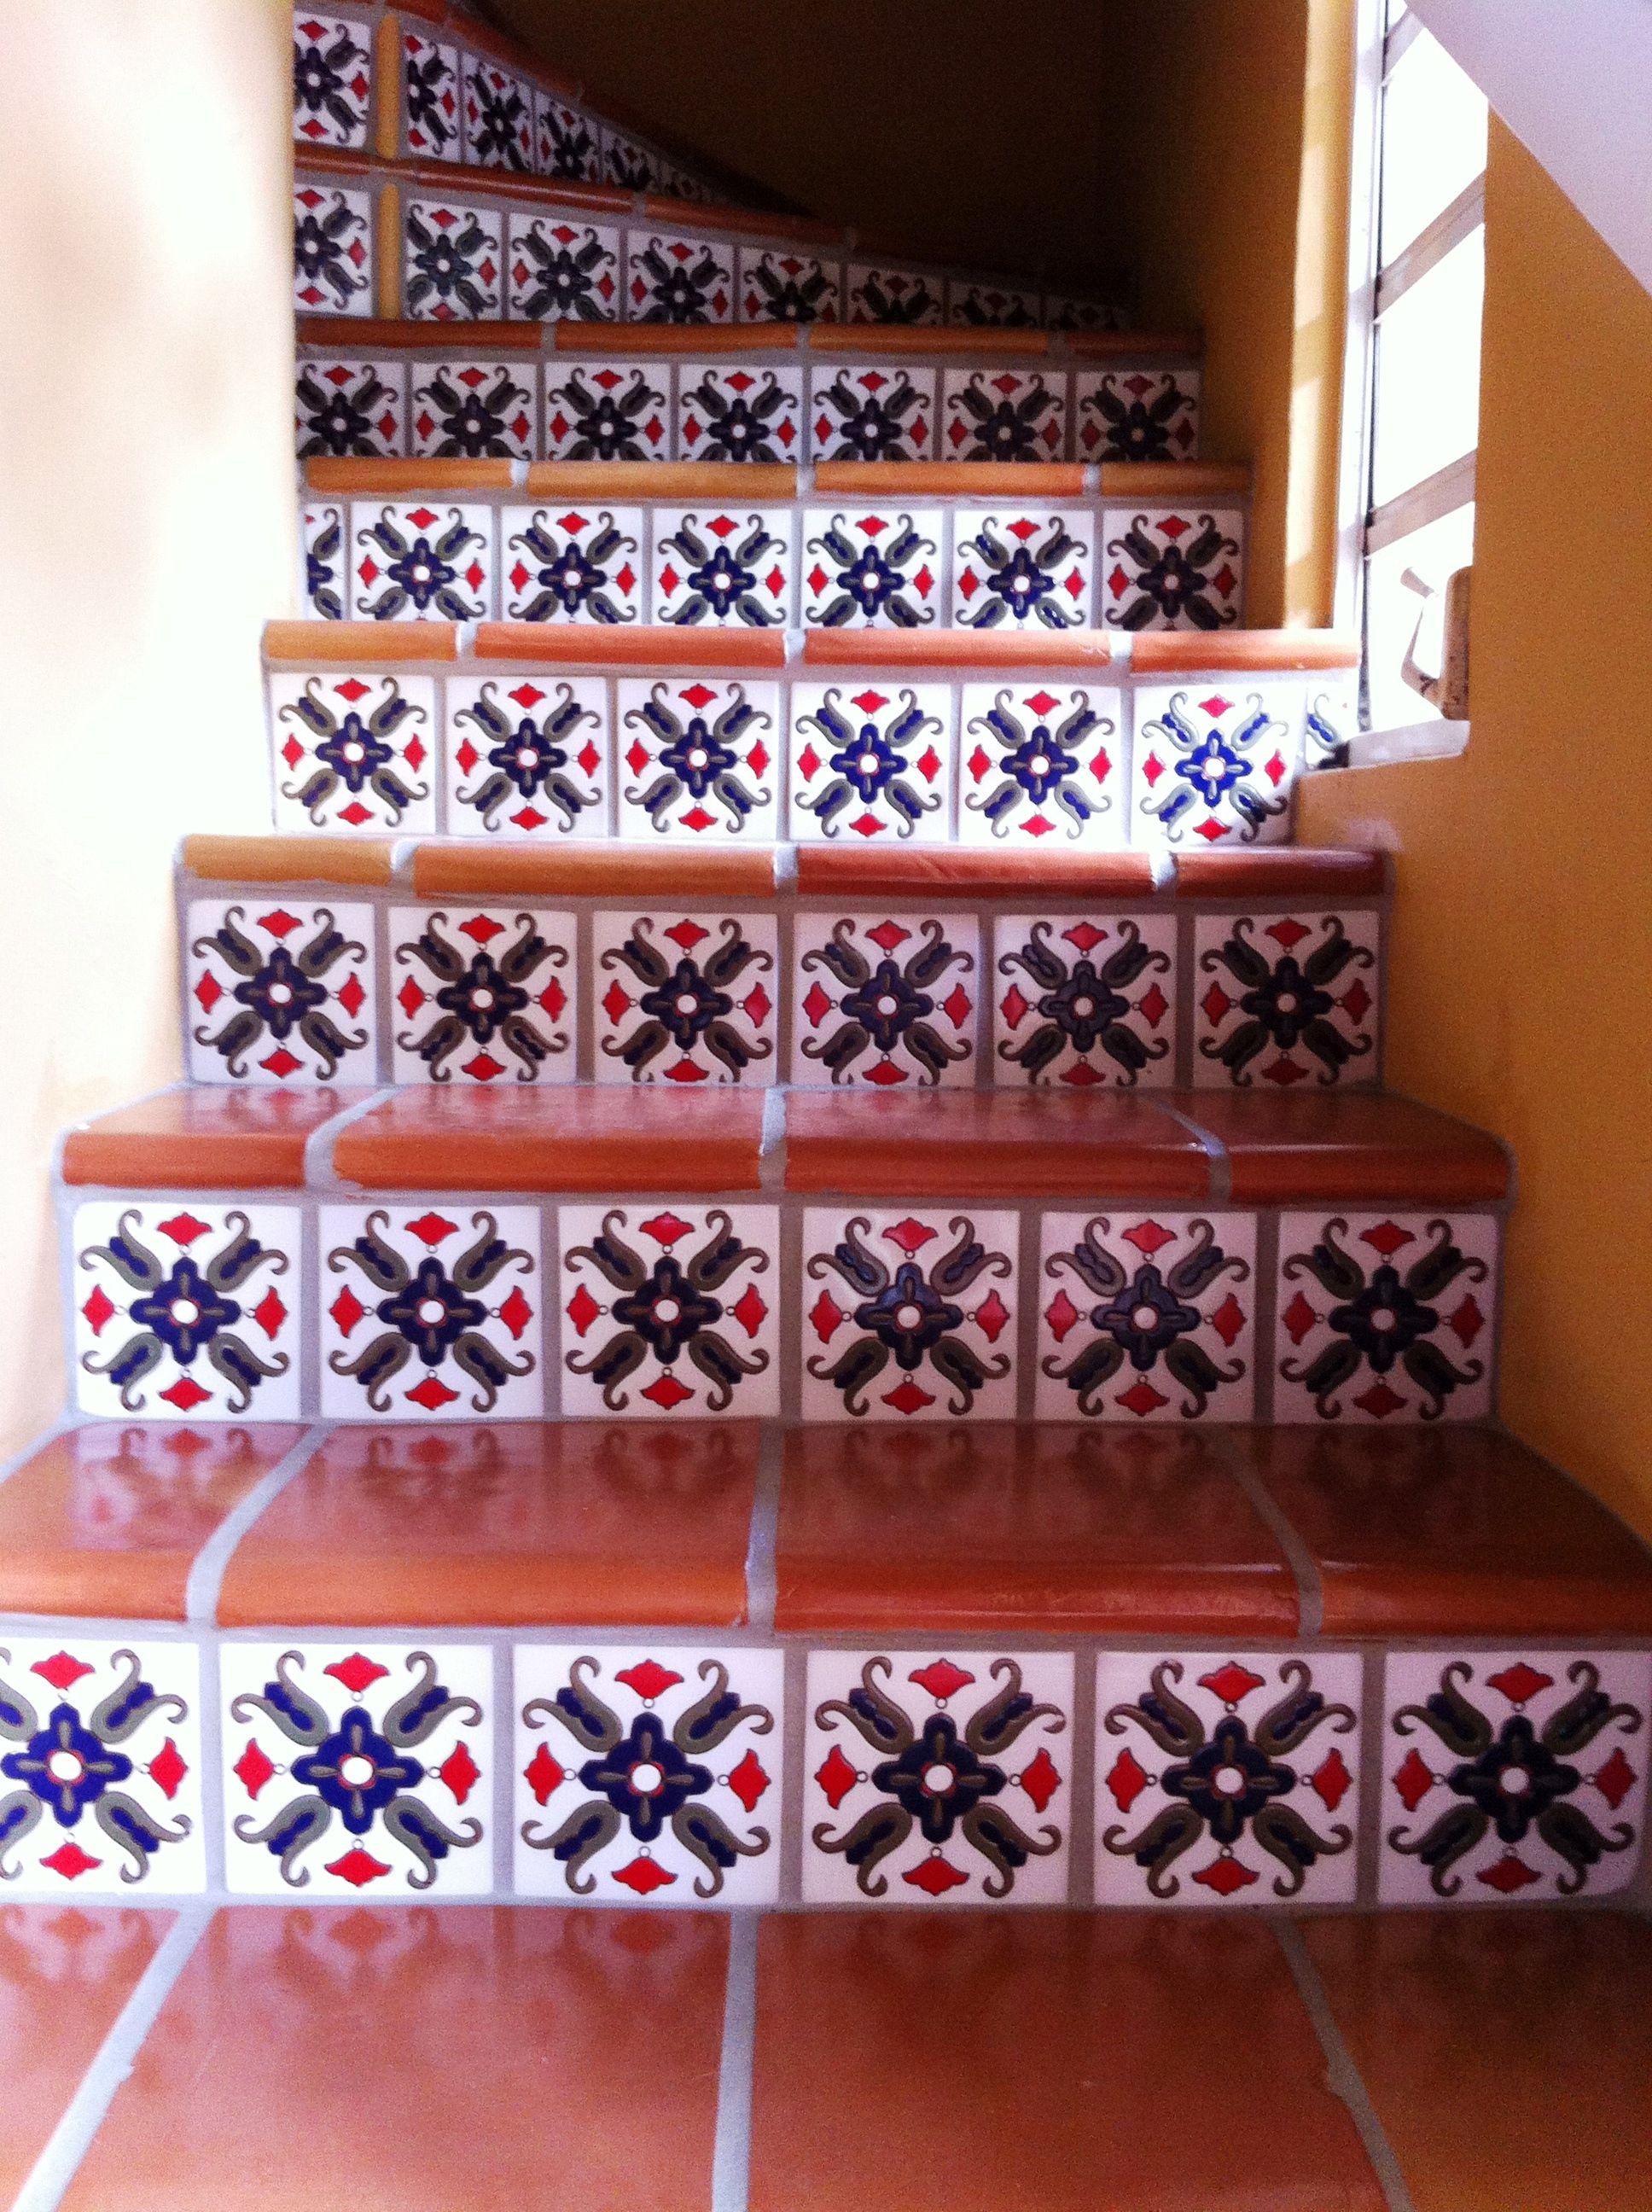 Saltillo terracotta spiral stairway with talavera stair risers view our talavera mexican painted ceramic clay tile mural tiles talavera sinks and accessories wholesale mexican tile prices in the tile industry doublecrazyfo Image collections